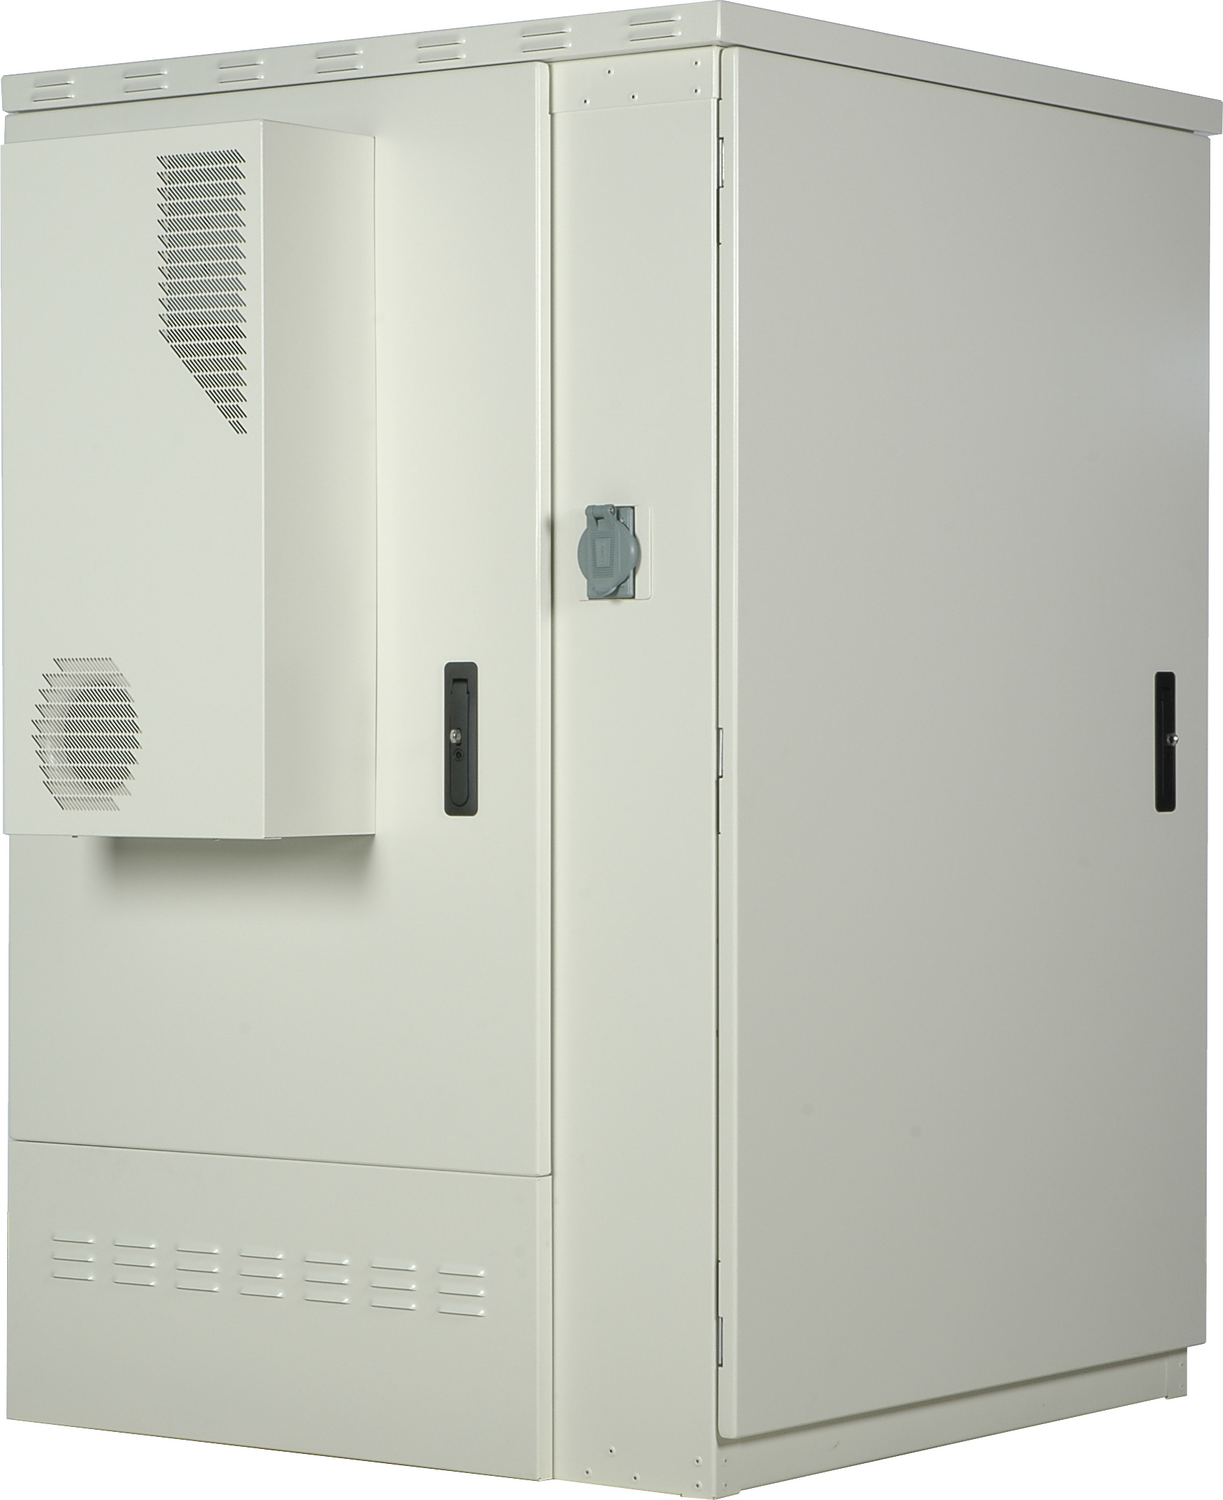 Side View of Clearfield ODC-2000 Fiber Cabinet